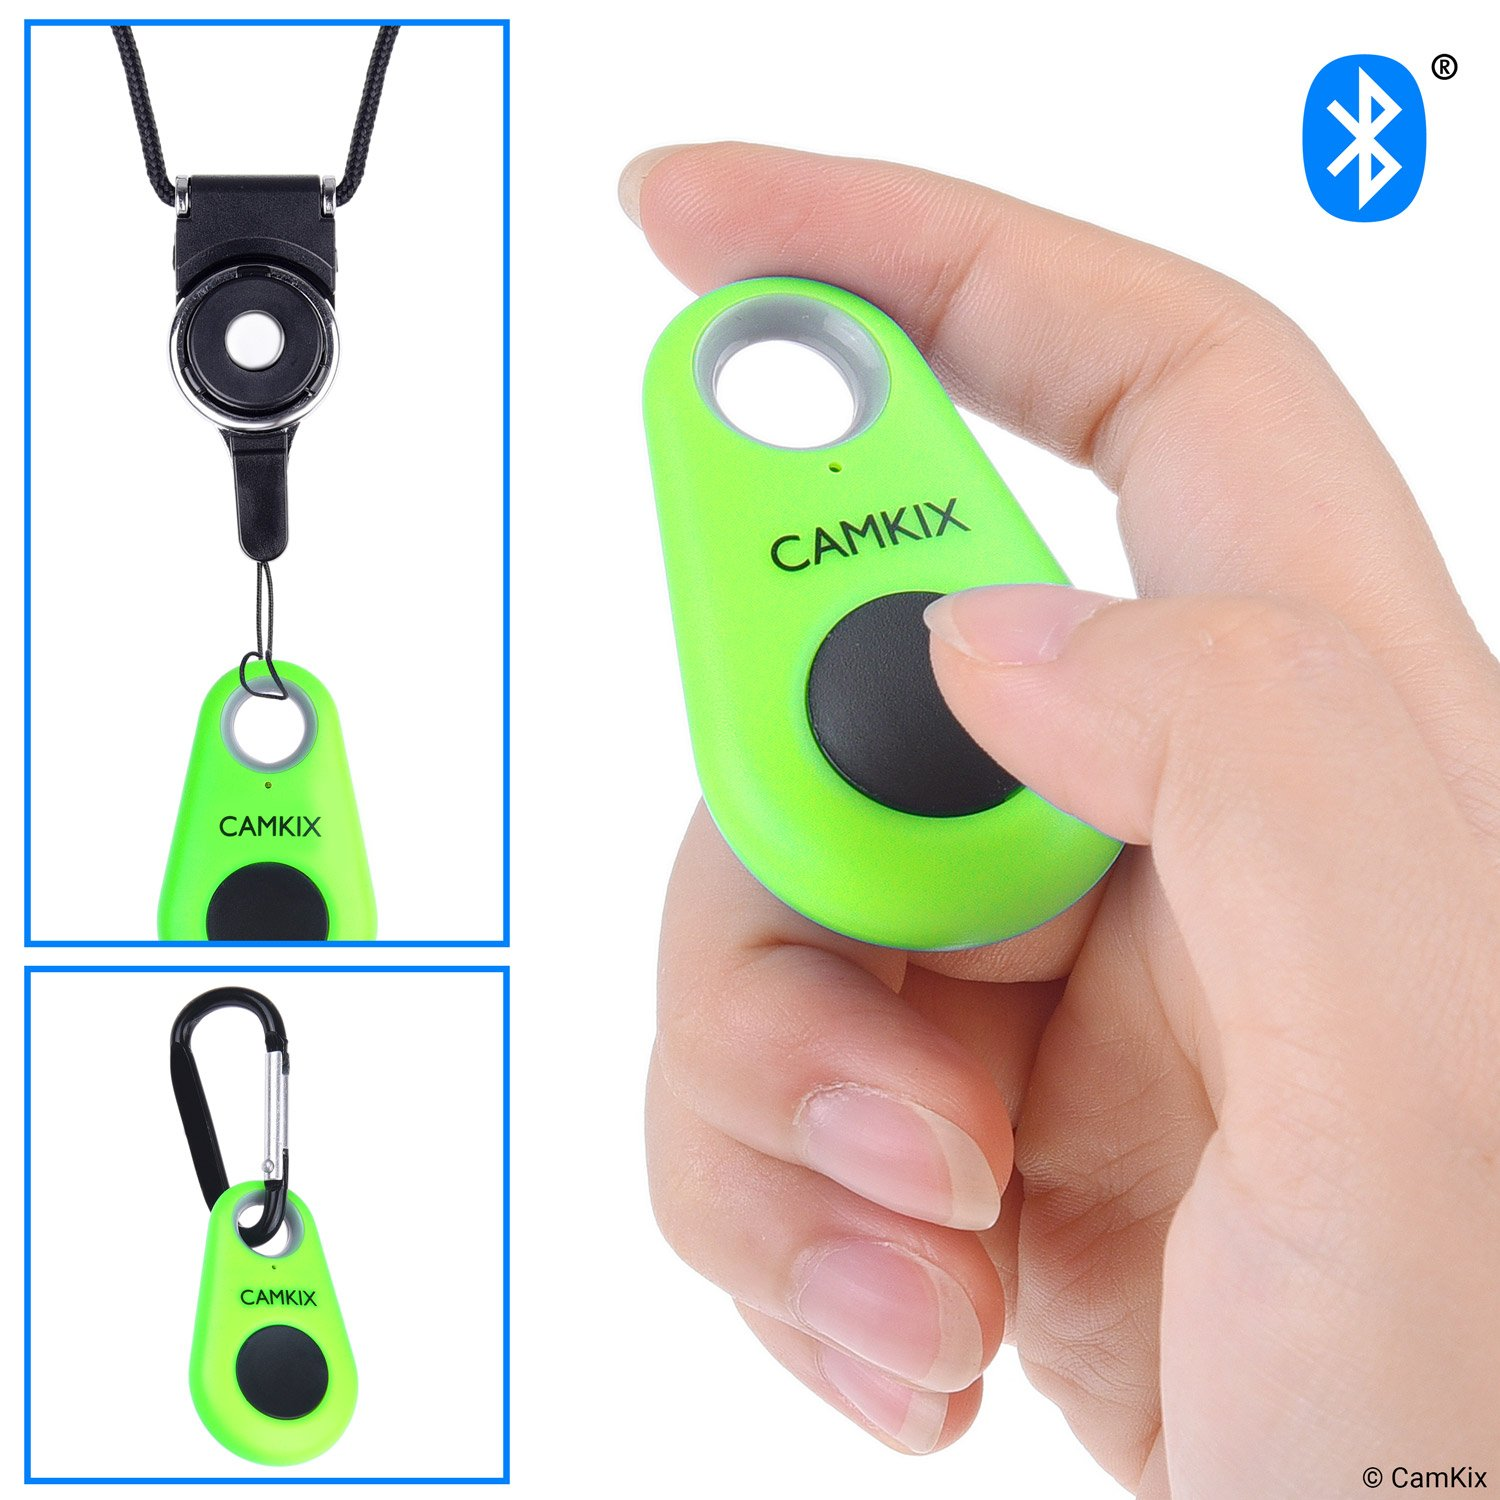 CamKix Camera Shutter Remote Control With Bluetooth Wireless Technology - Lanyard with Detachable Ring Mount - Carabiner - Pictures and Video from up to 30 ft (10 m) compatible with iPhone/Android